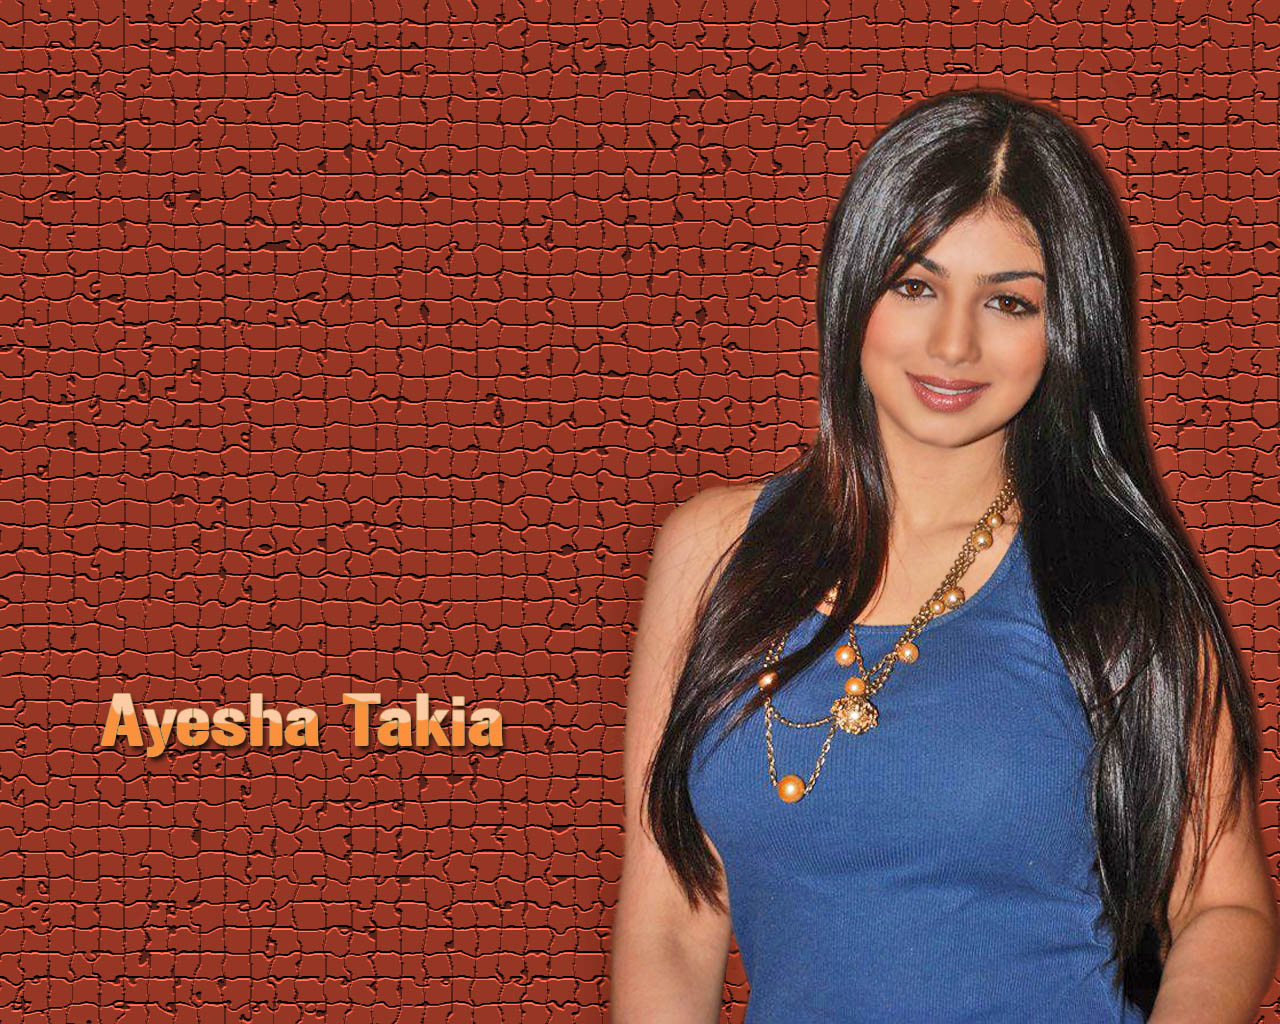 Fashionewallpaper.blogspot.com: Ayesha Takia Wallpapers